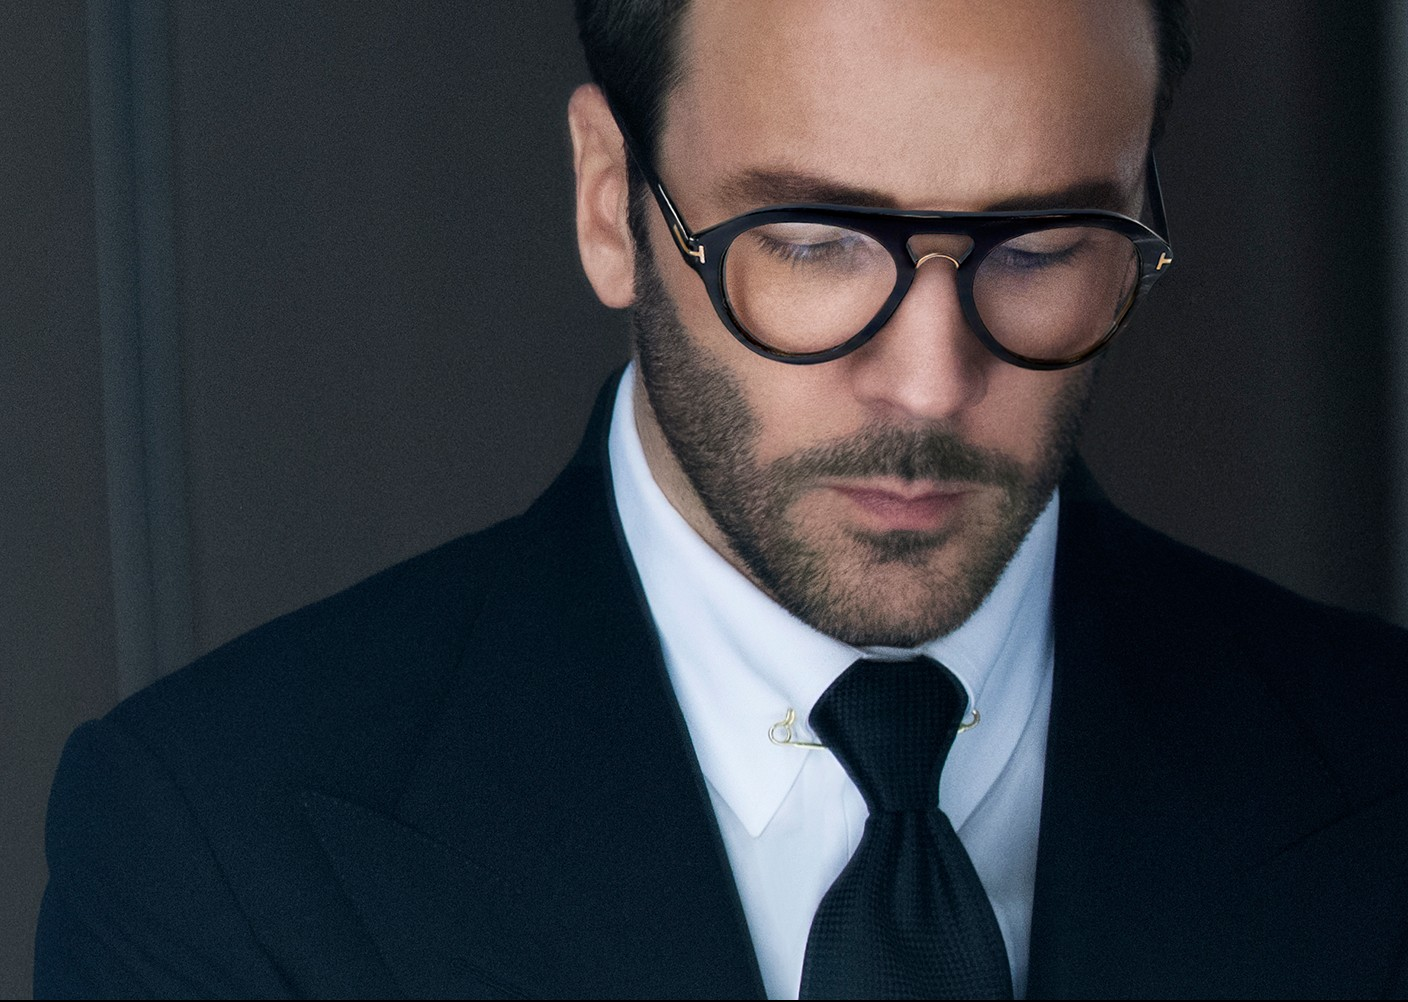 Tom-Ford-Private-Collection-Eyewear-e1459529682615